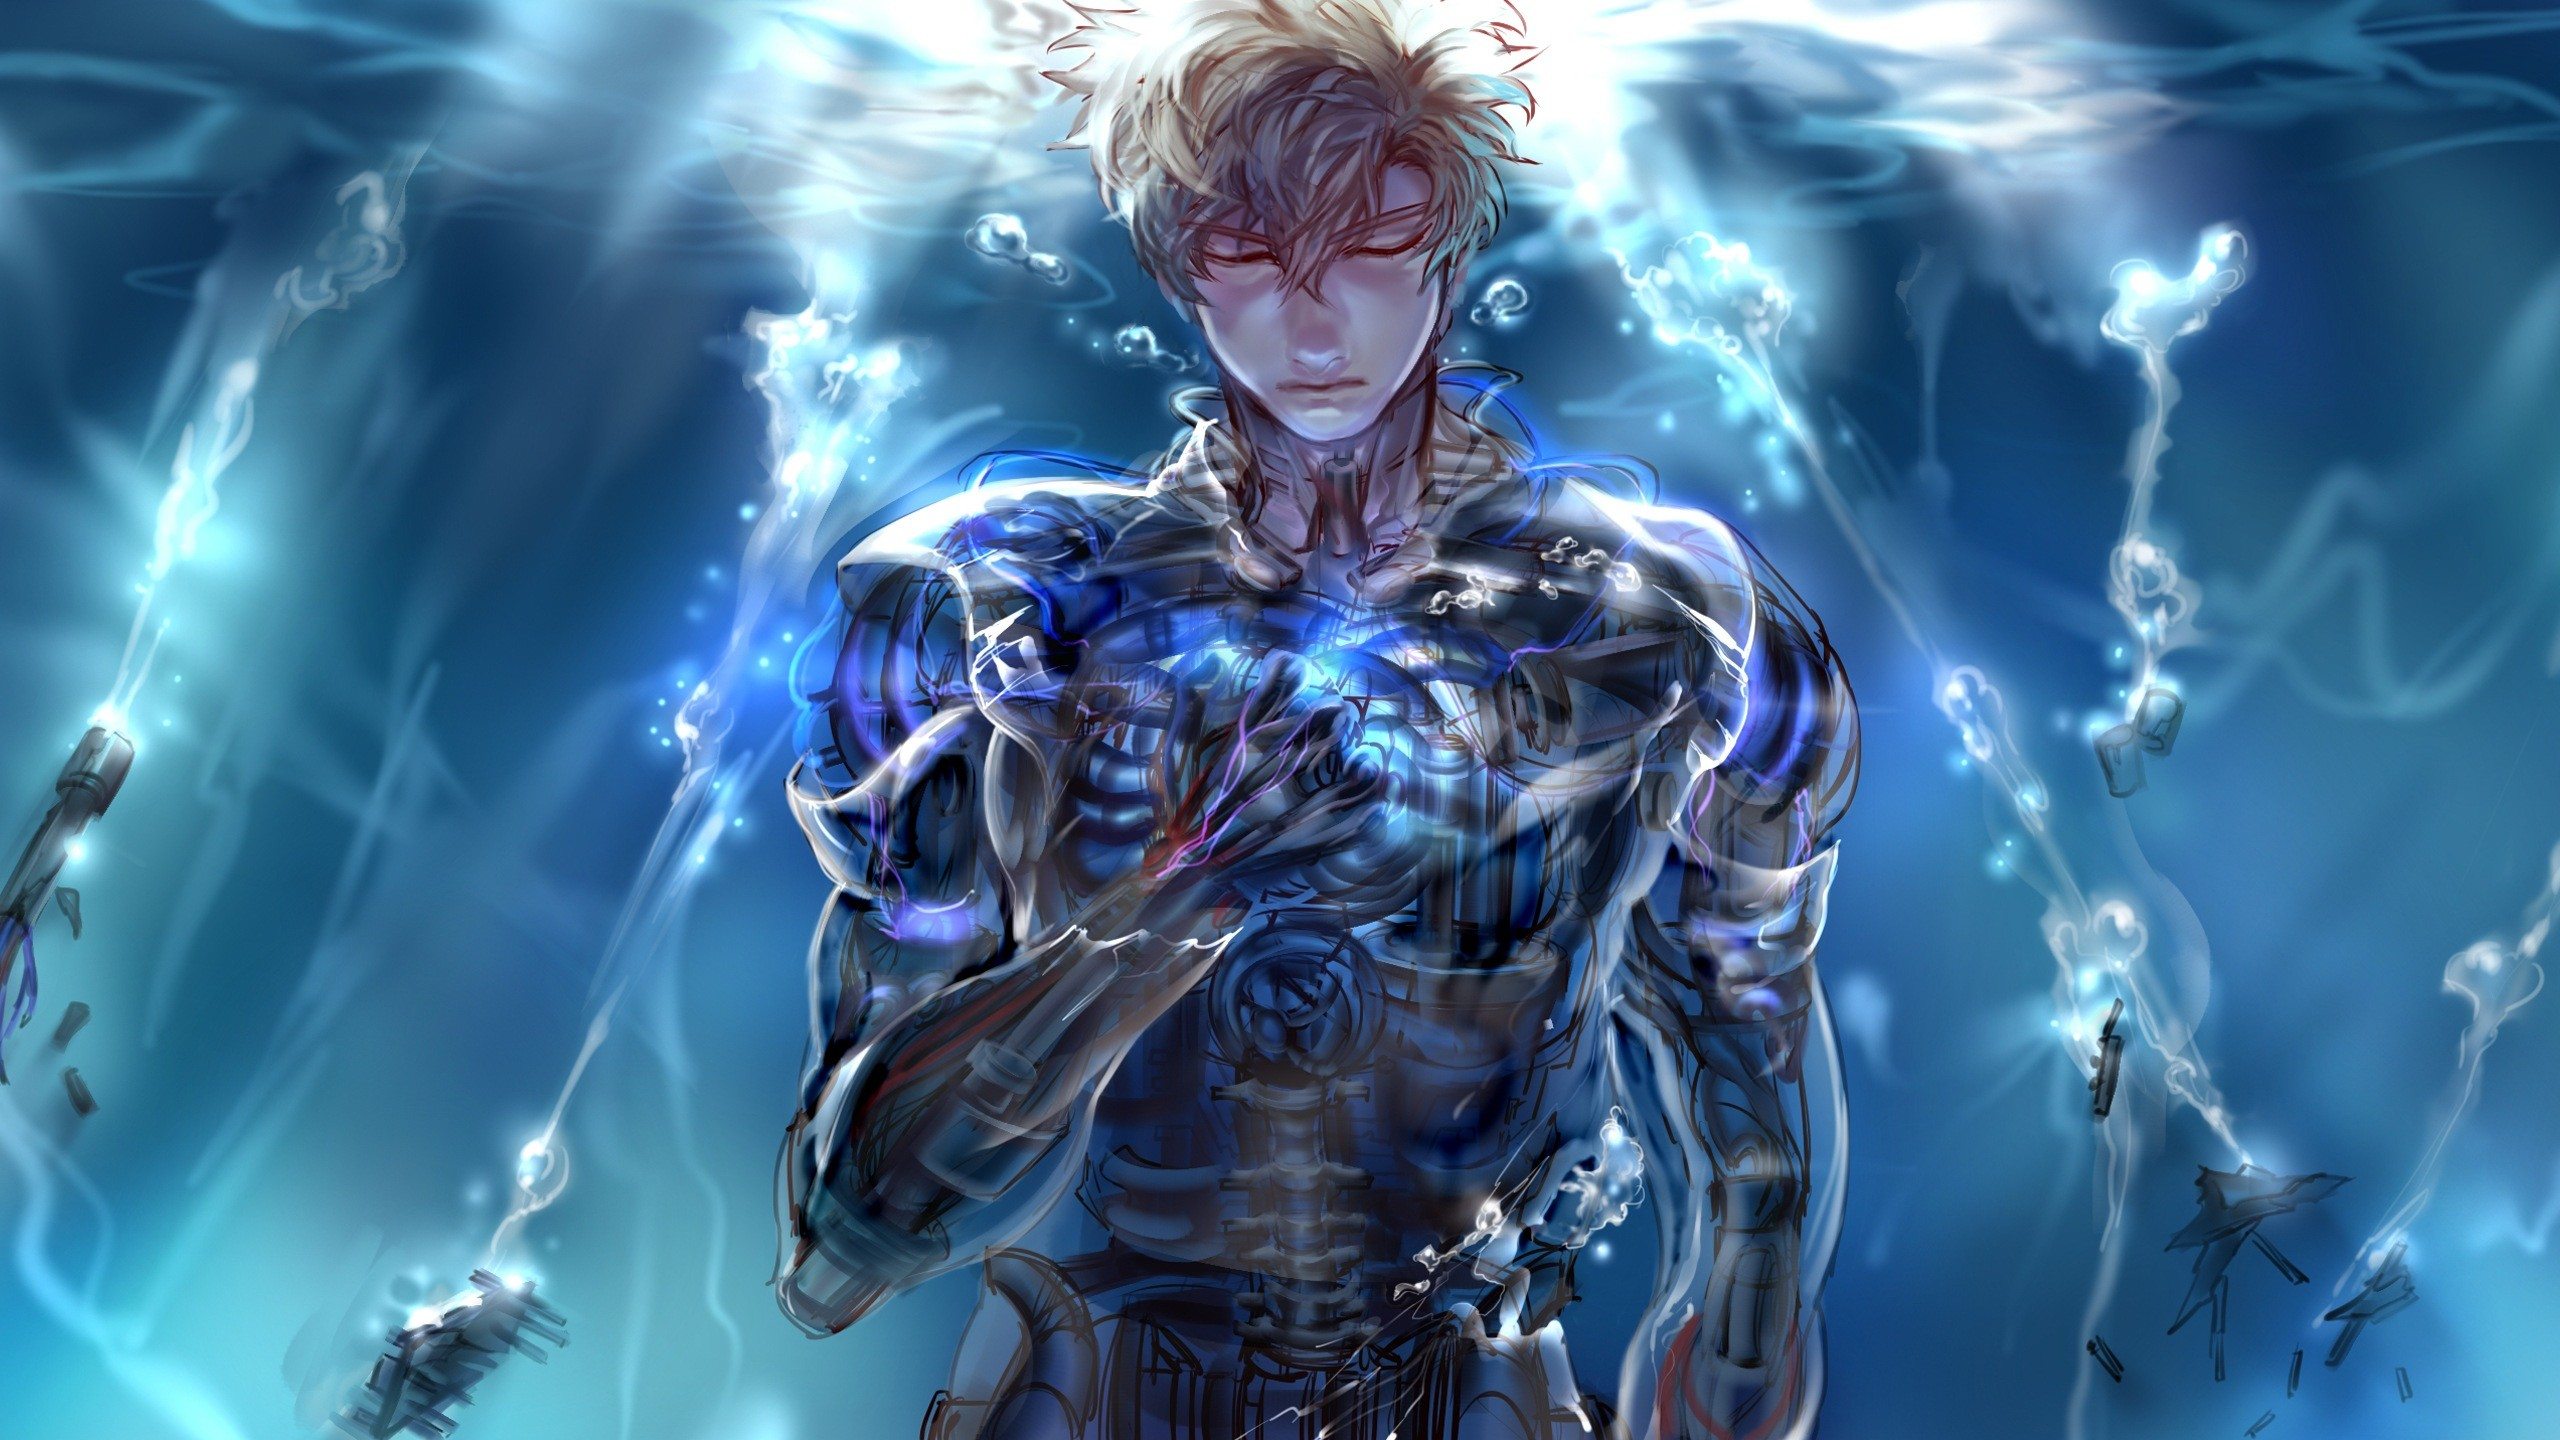 Anime – One-Punch Man Genos (One-Punch Man) Wallpaper